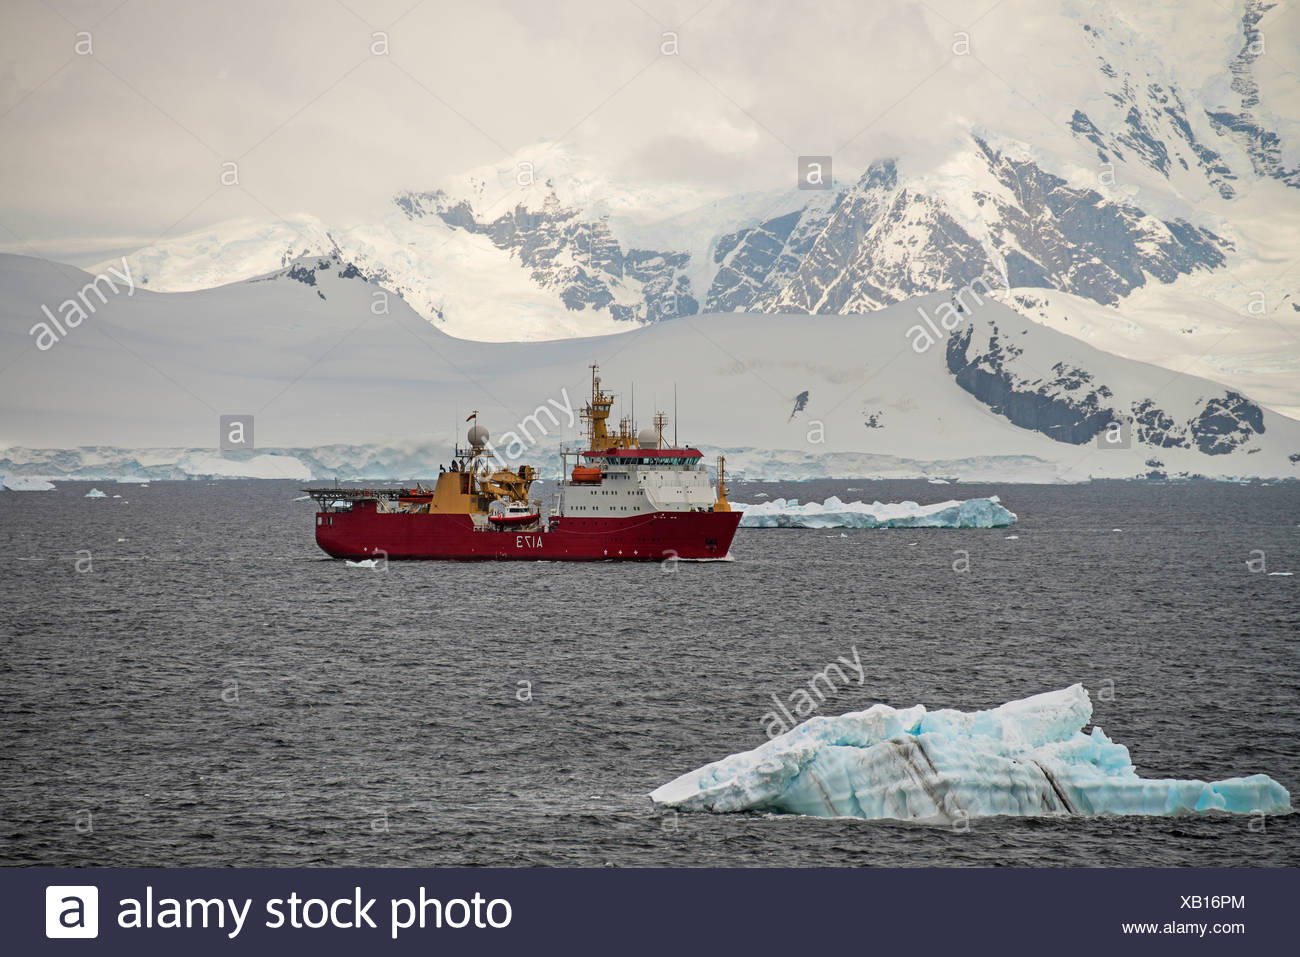 A scientific survey research ship on the water offshore in Antarctica. - Stock Image